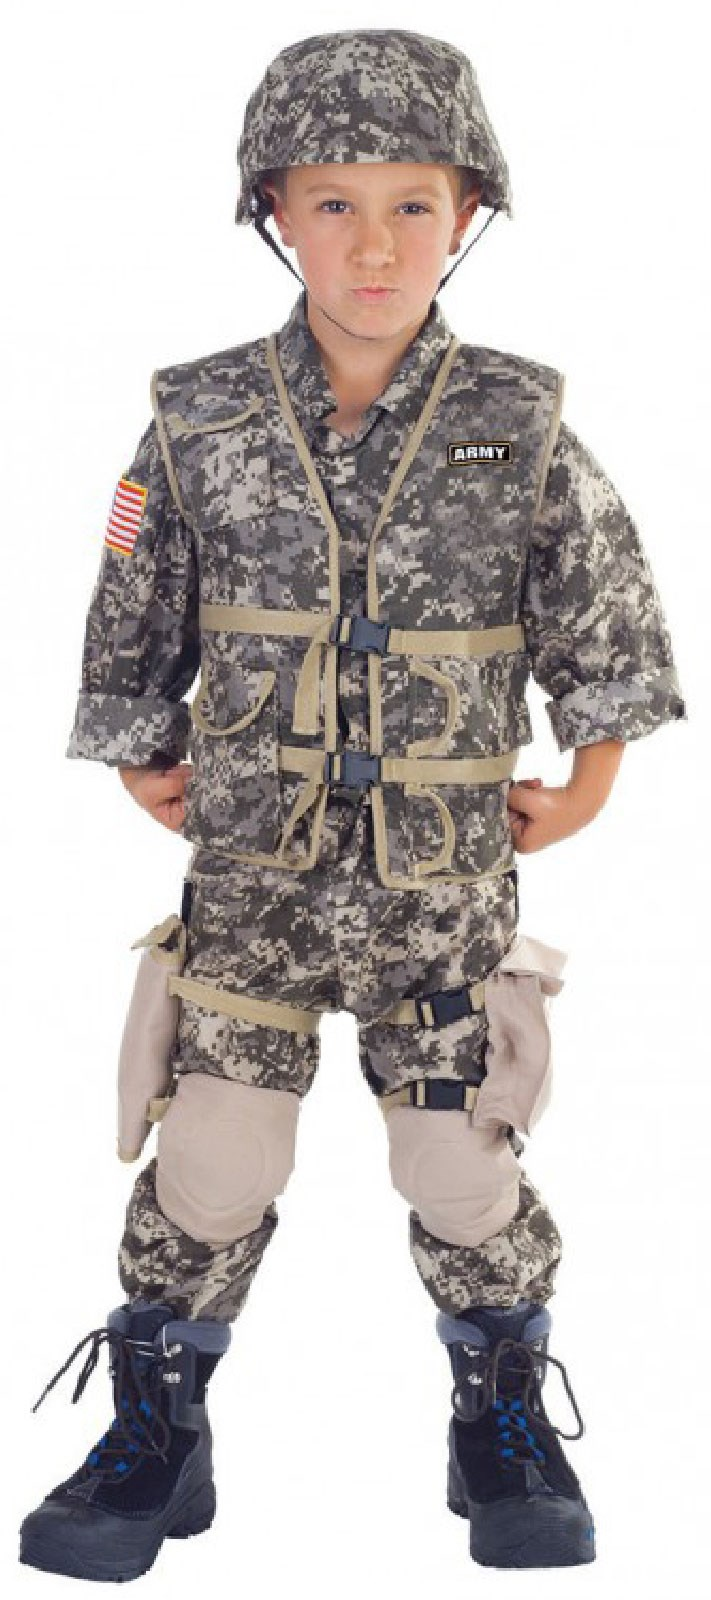 U.S. Army Ranger Deluxe Child Costume 10-12